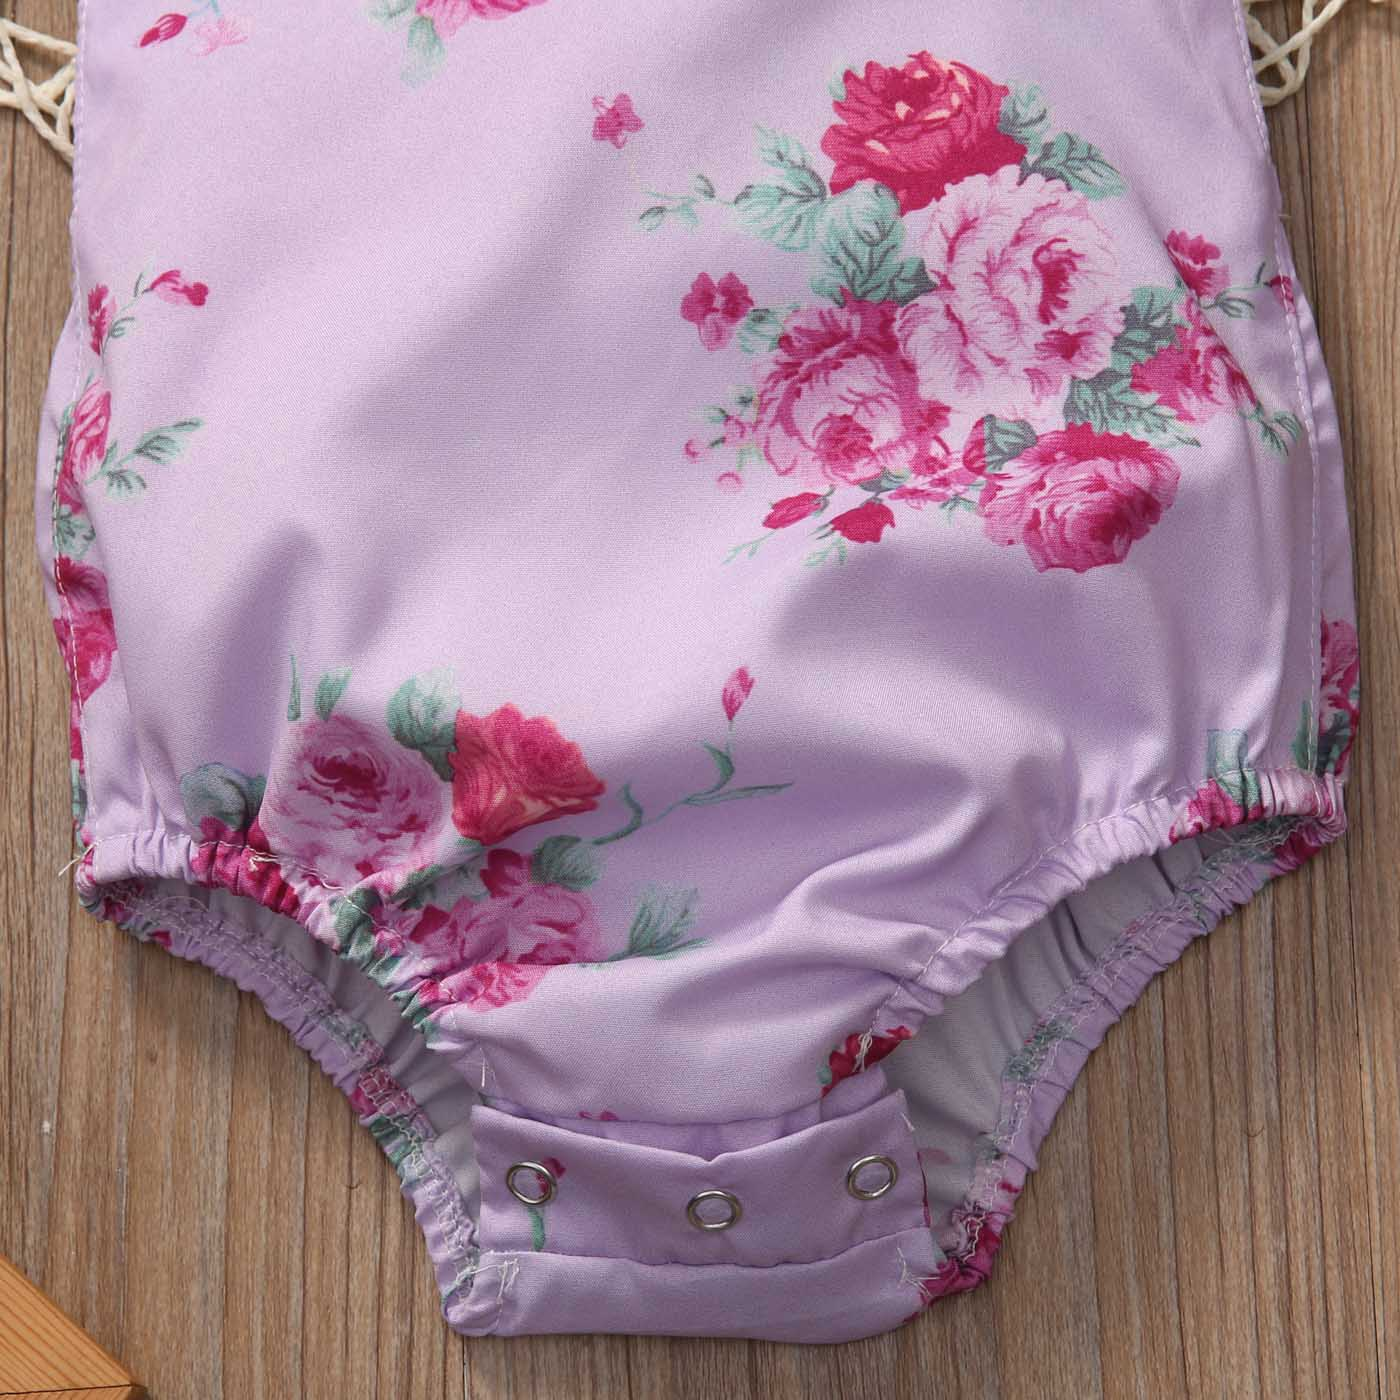 Newborn Toddler Cute Baby Girl Clothes Fioral Printed Fille Joli